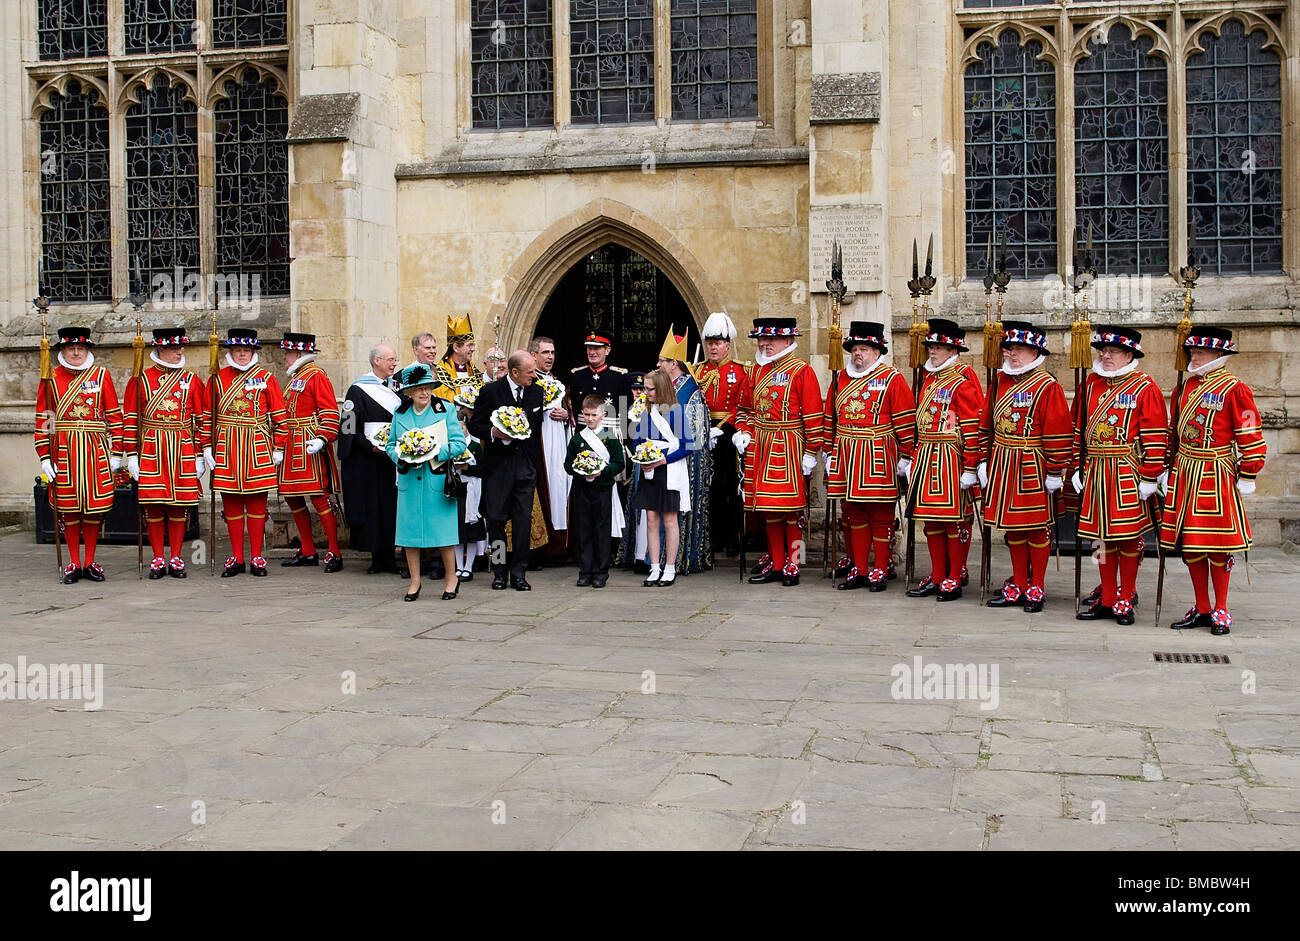 Britain's Queen Elizabeth II attend the Maundy Service at St Edmundsbury Cathedral, Bury St Edmunds, Suffolk - Stock Image